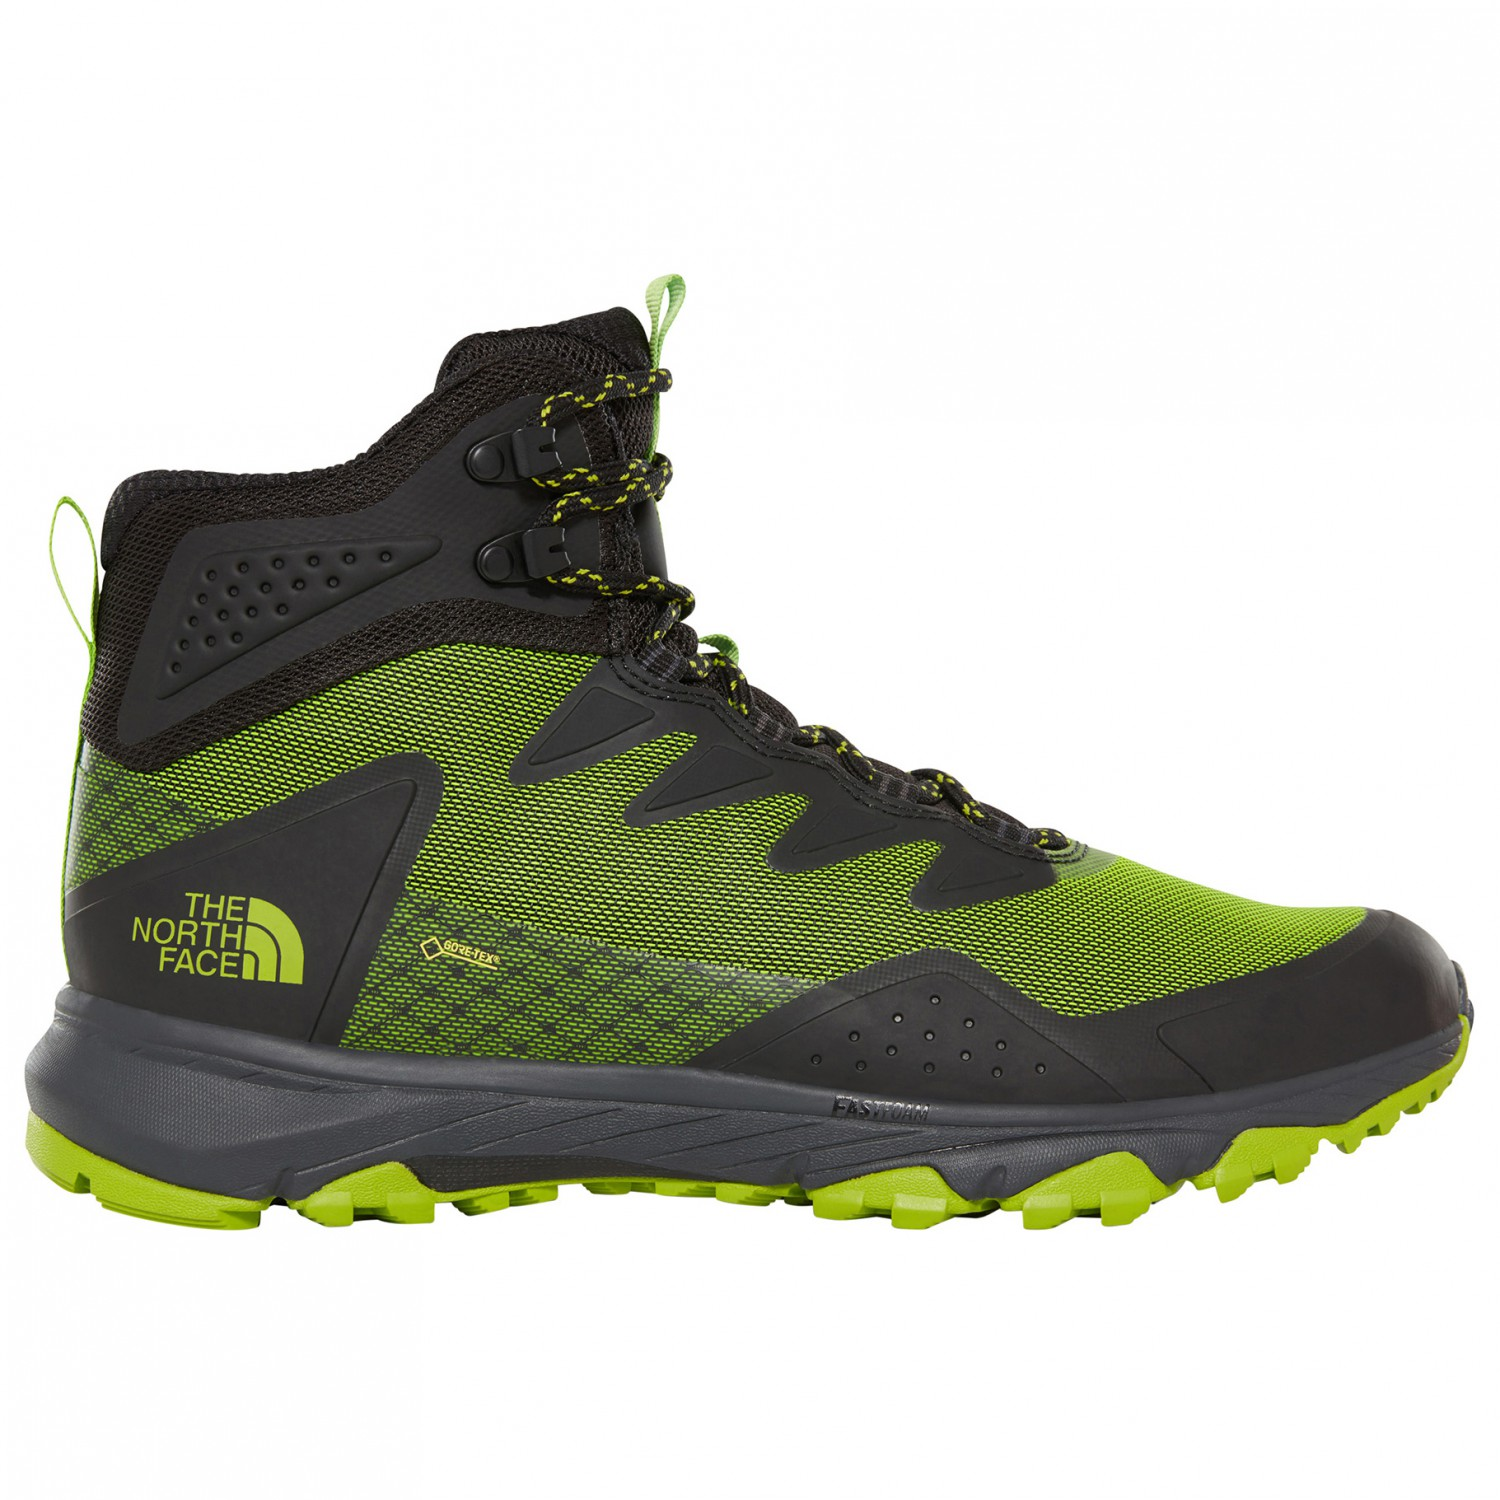 c01605495a The North Face - Ultra Fastpack III Mid GTX - Walking boots - TNF Black /  Amber | 8,5 (US)